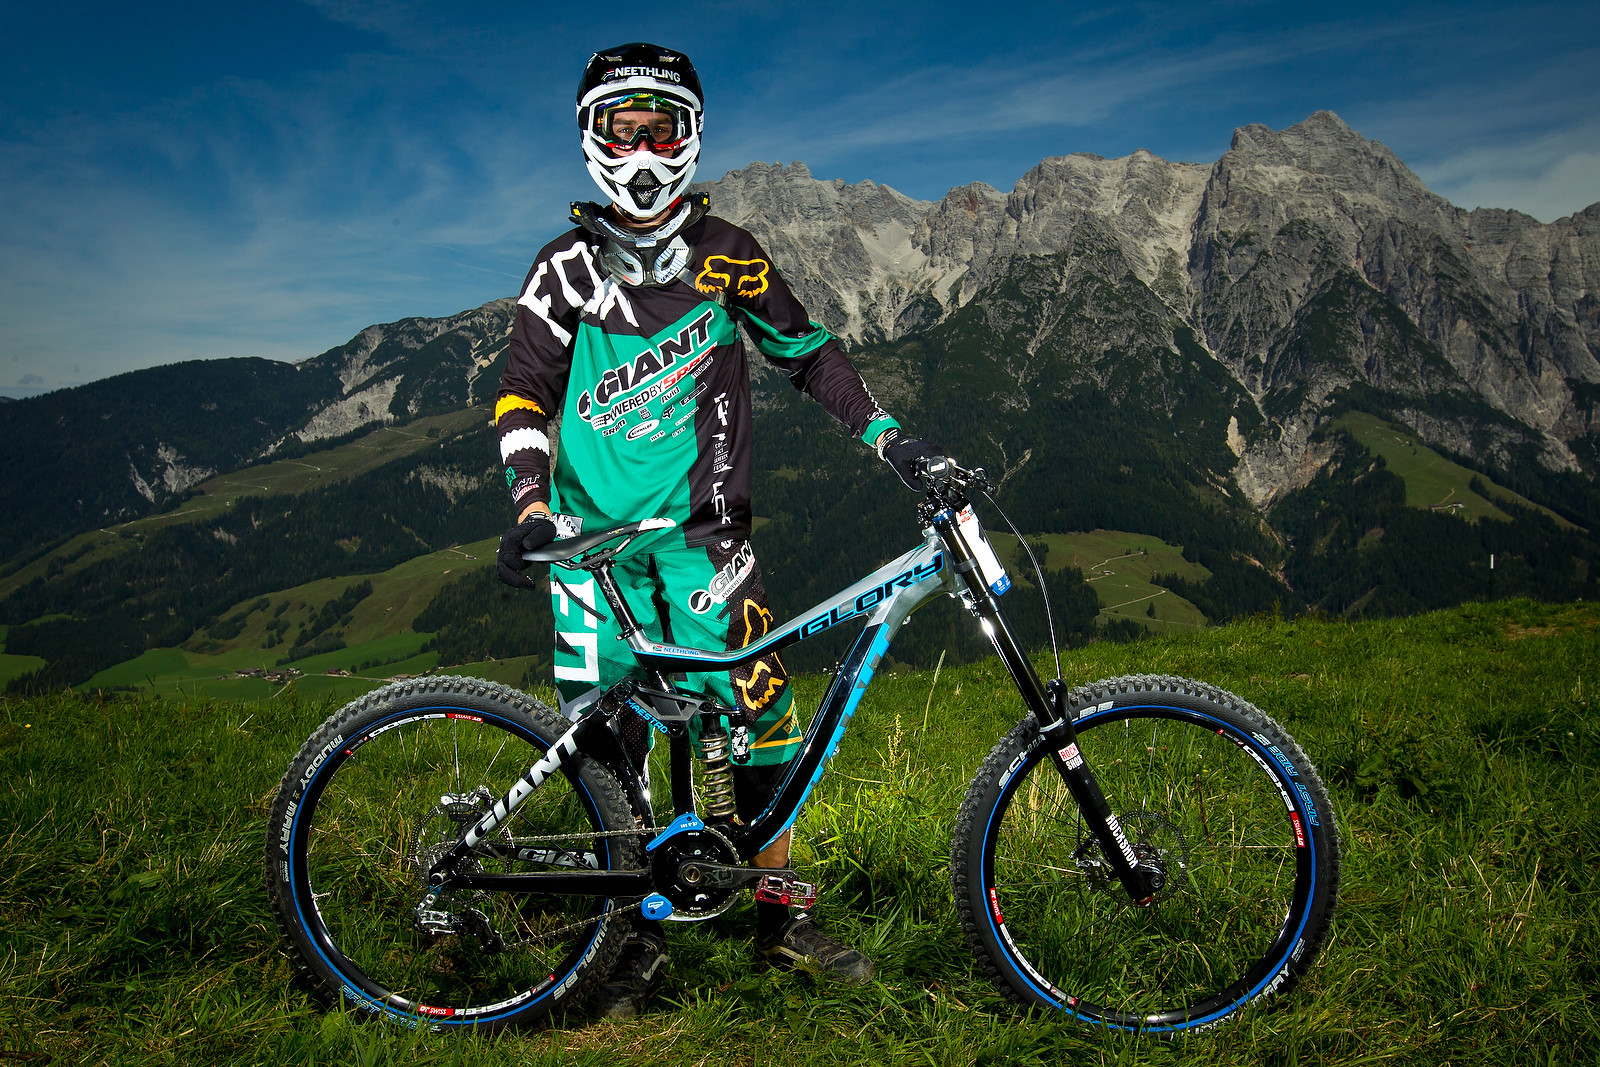 Andrew Neethling with his 2013 Giant Glory - World Championships Riders and Bikes - Mountain Biking Pictures - Vital MTB